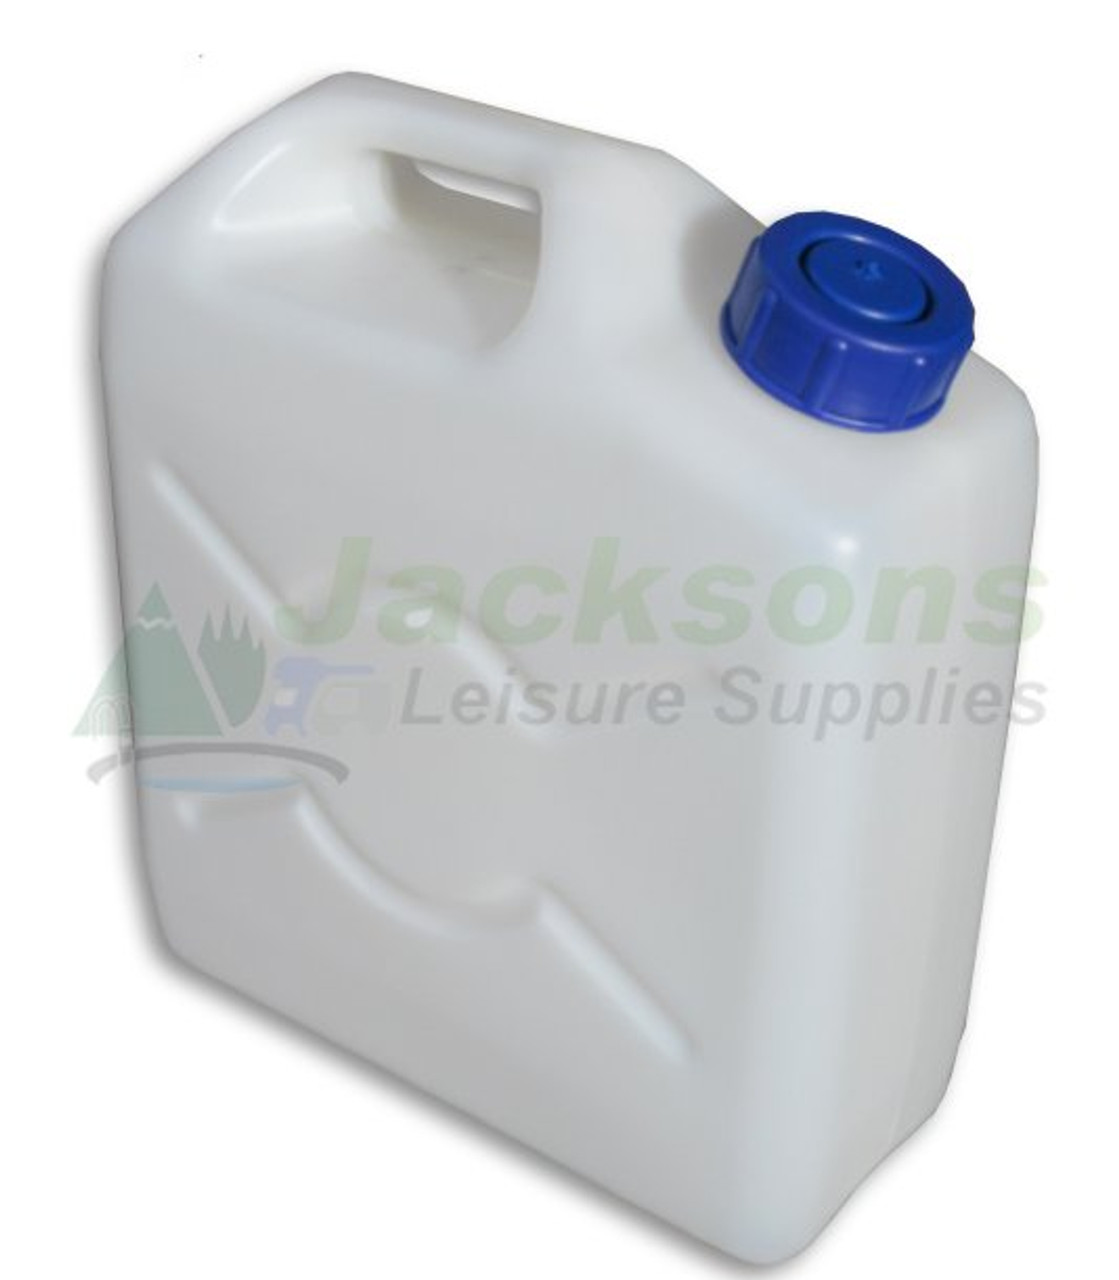 5 Litre camping jerrycan water carrier with handle